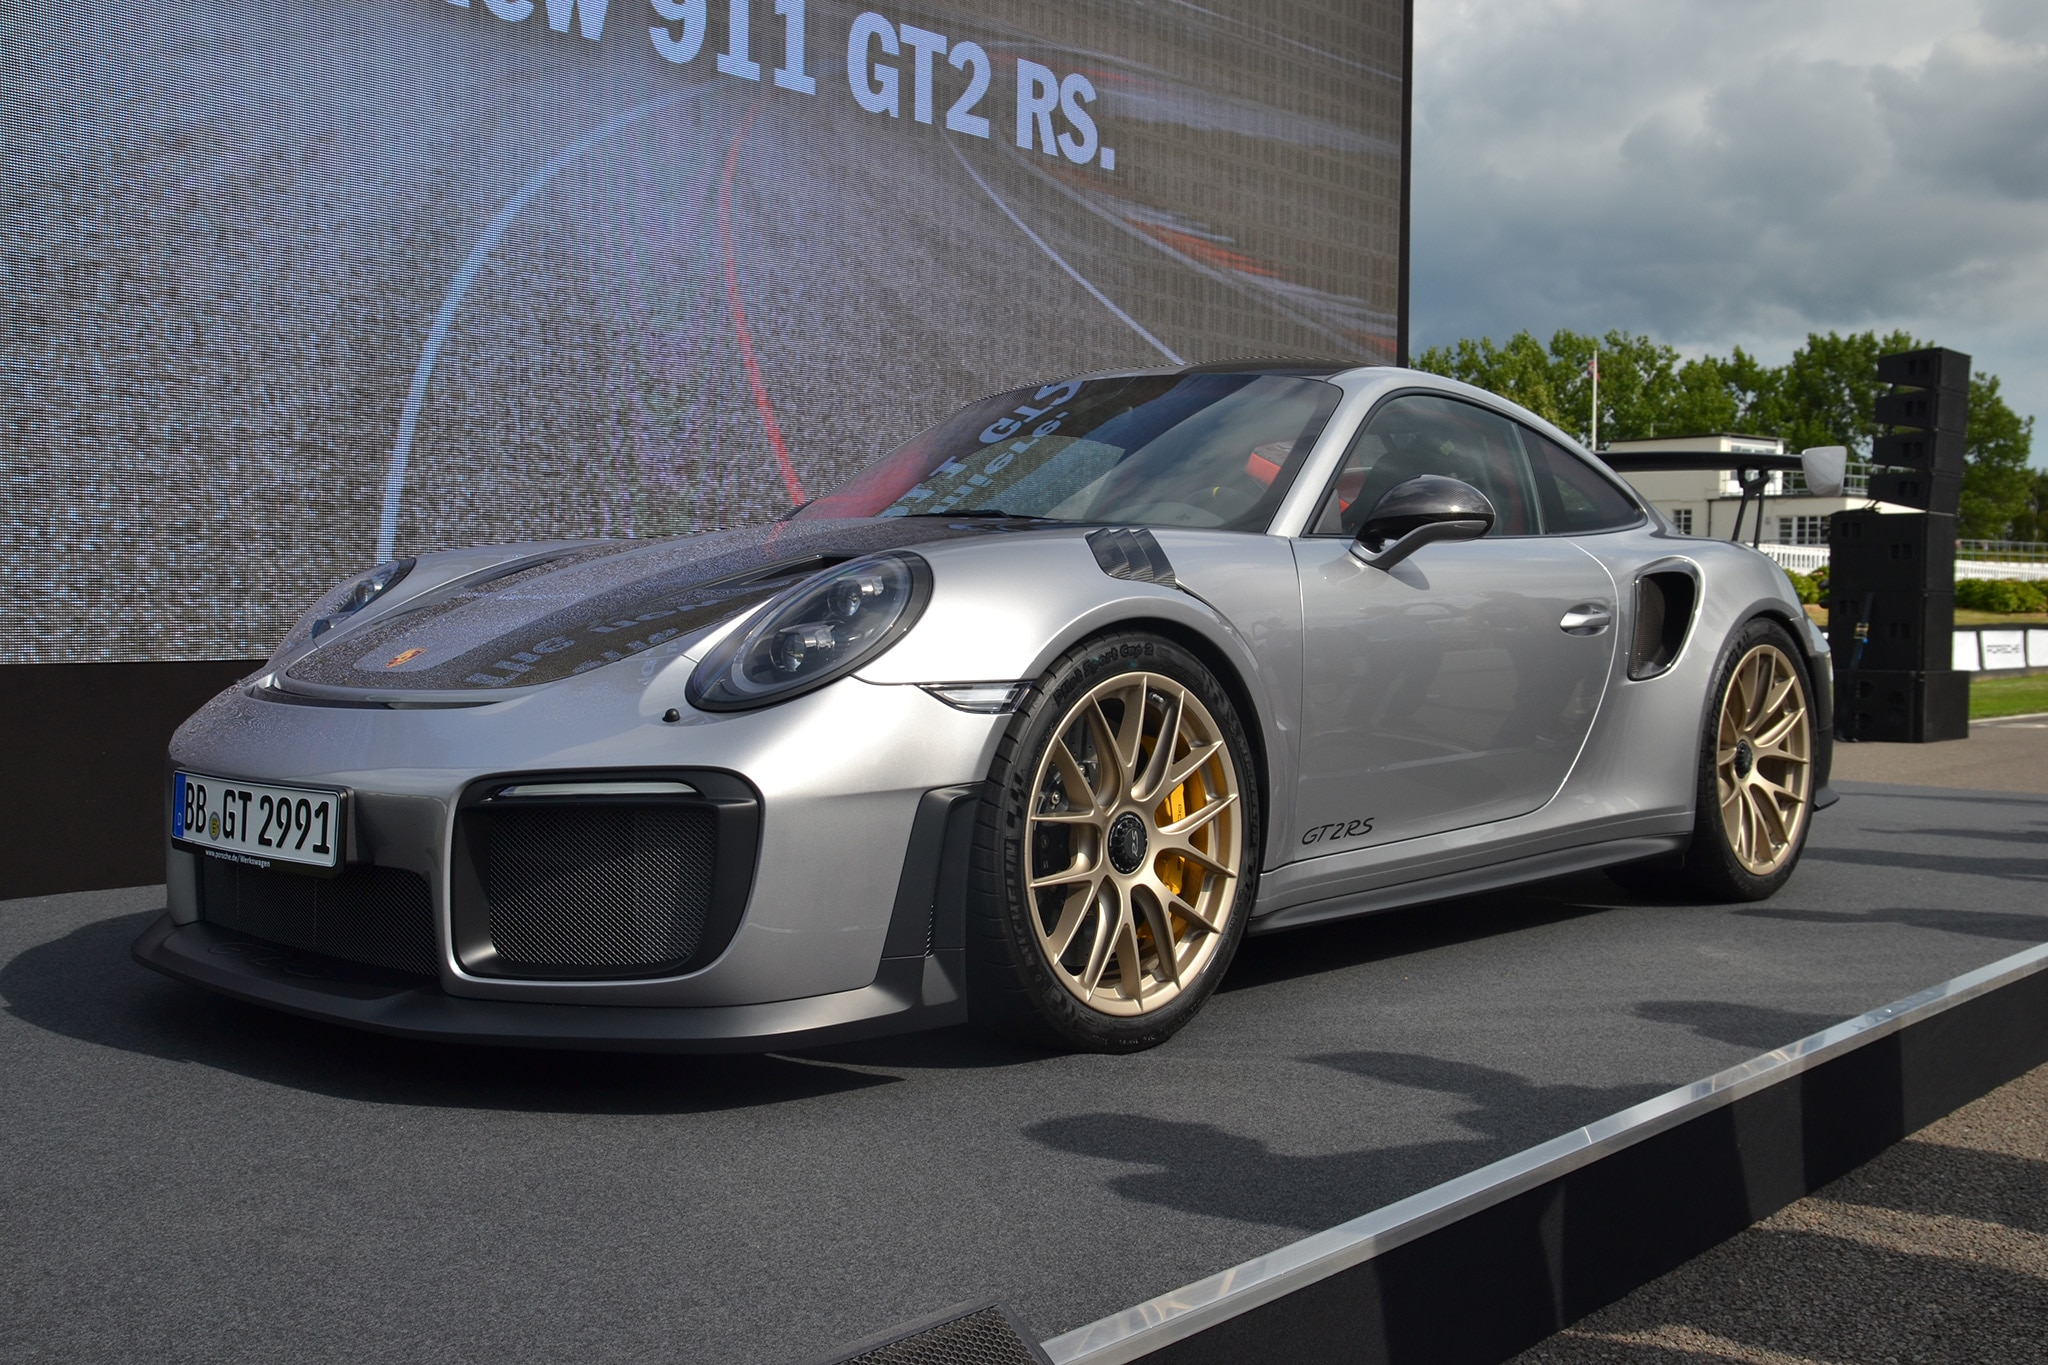 2018 Porsche 911 GT2 RS Revealed at Goodwood | Automobile Magazine